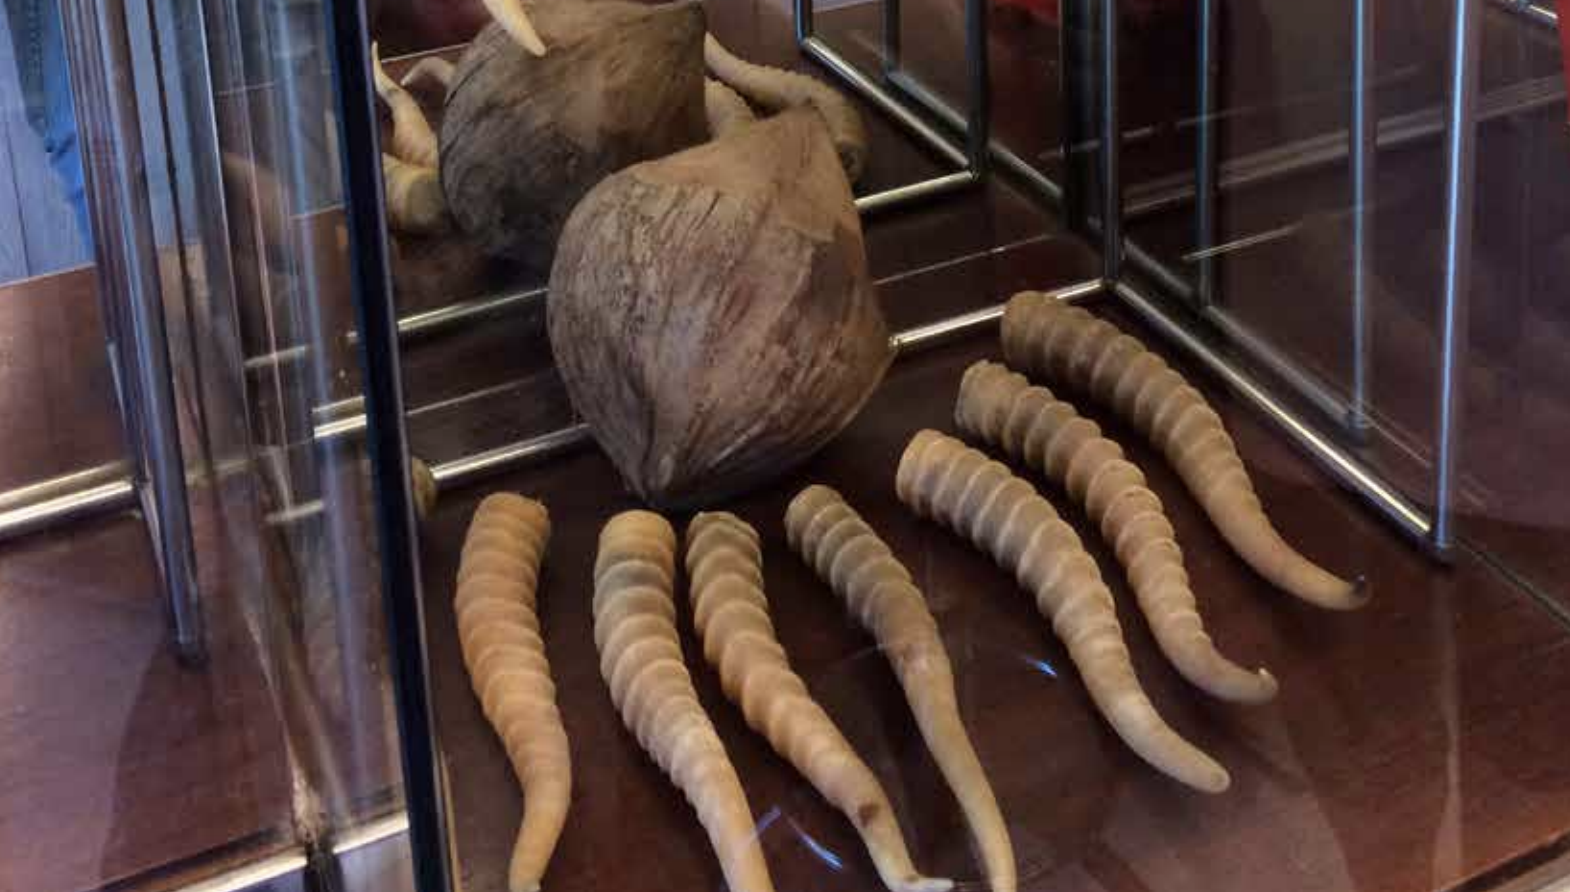 Endangered Saiga antelope's horns. Photo courtesy: Traffic